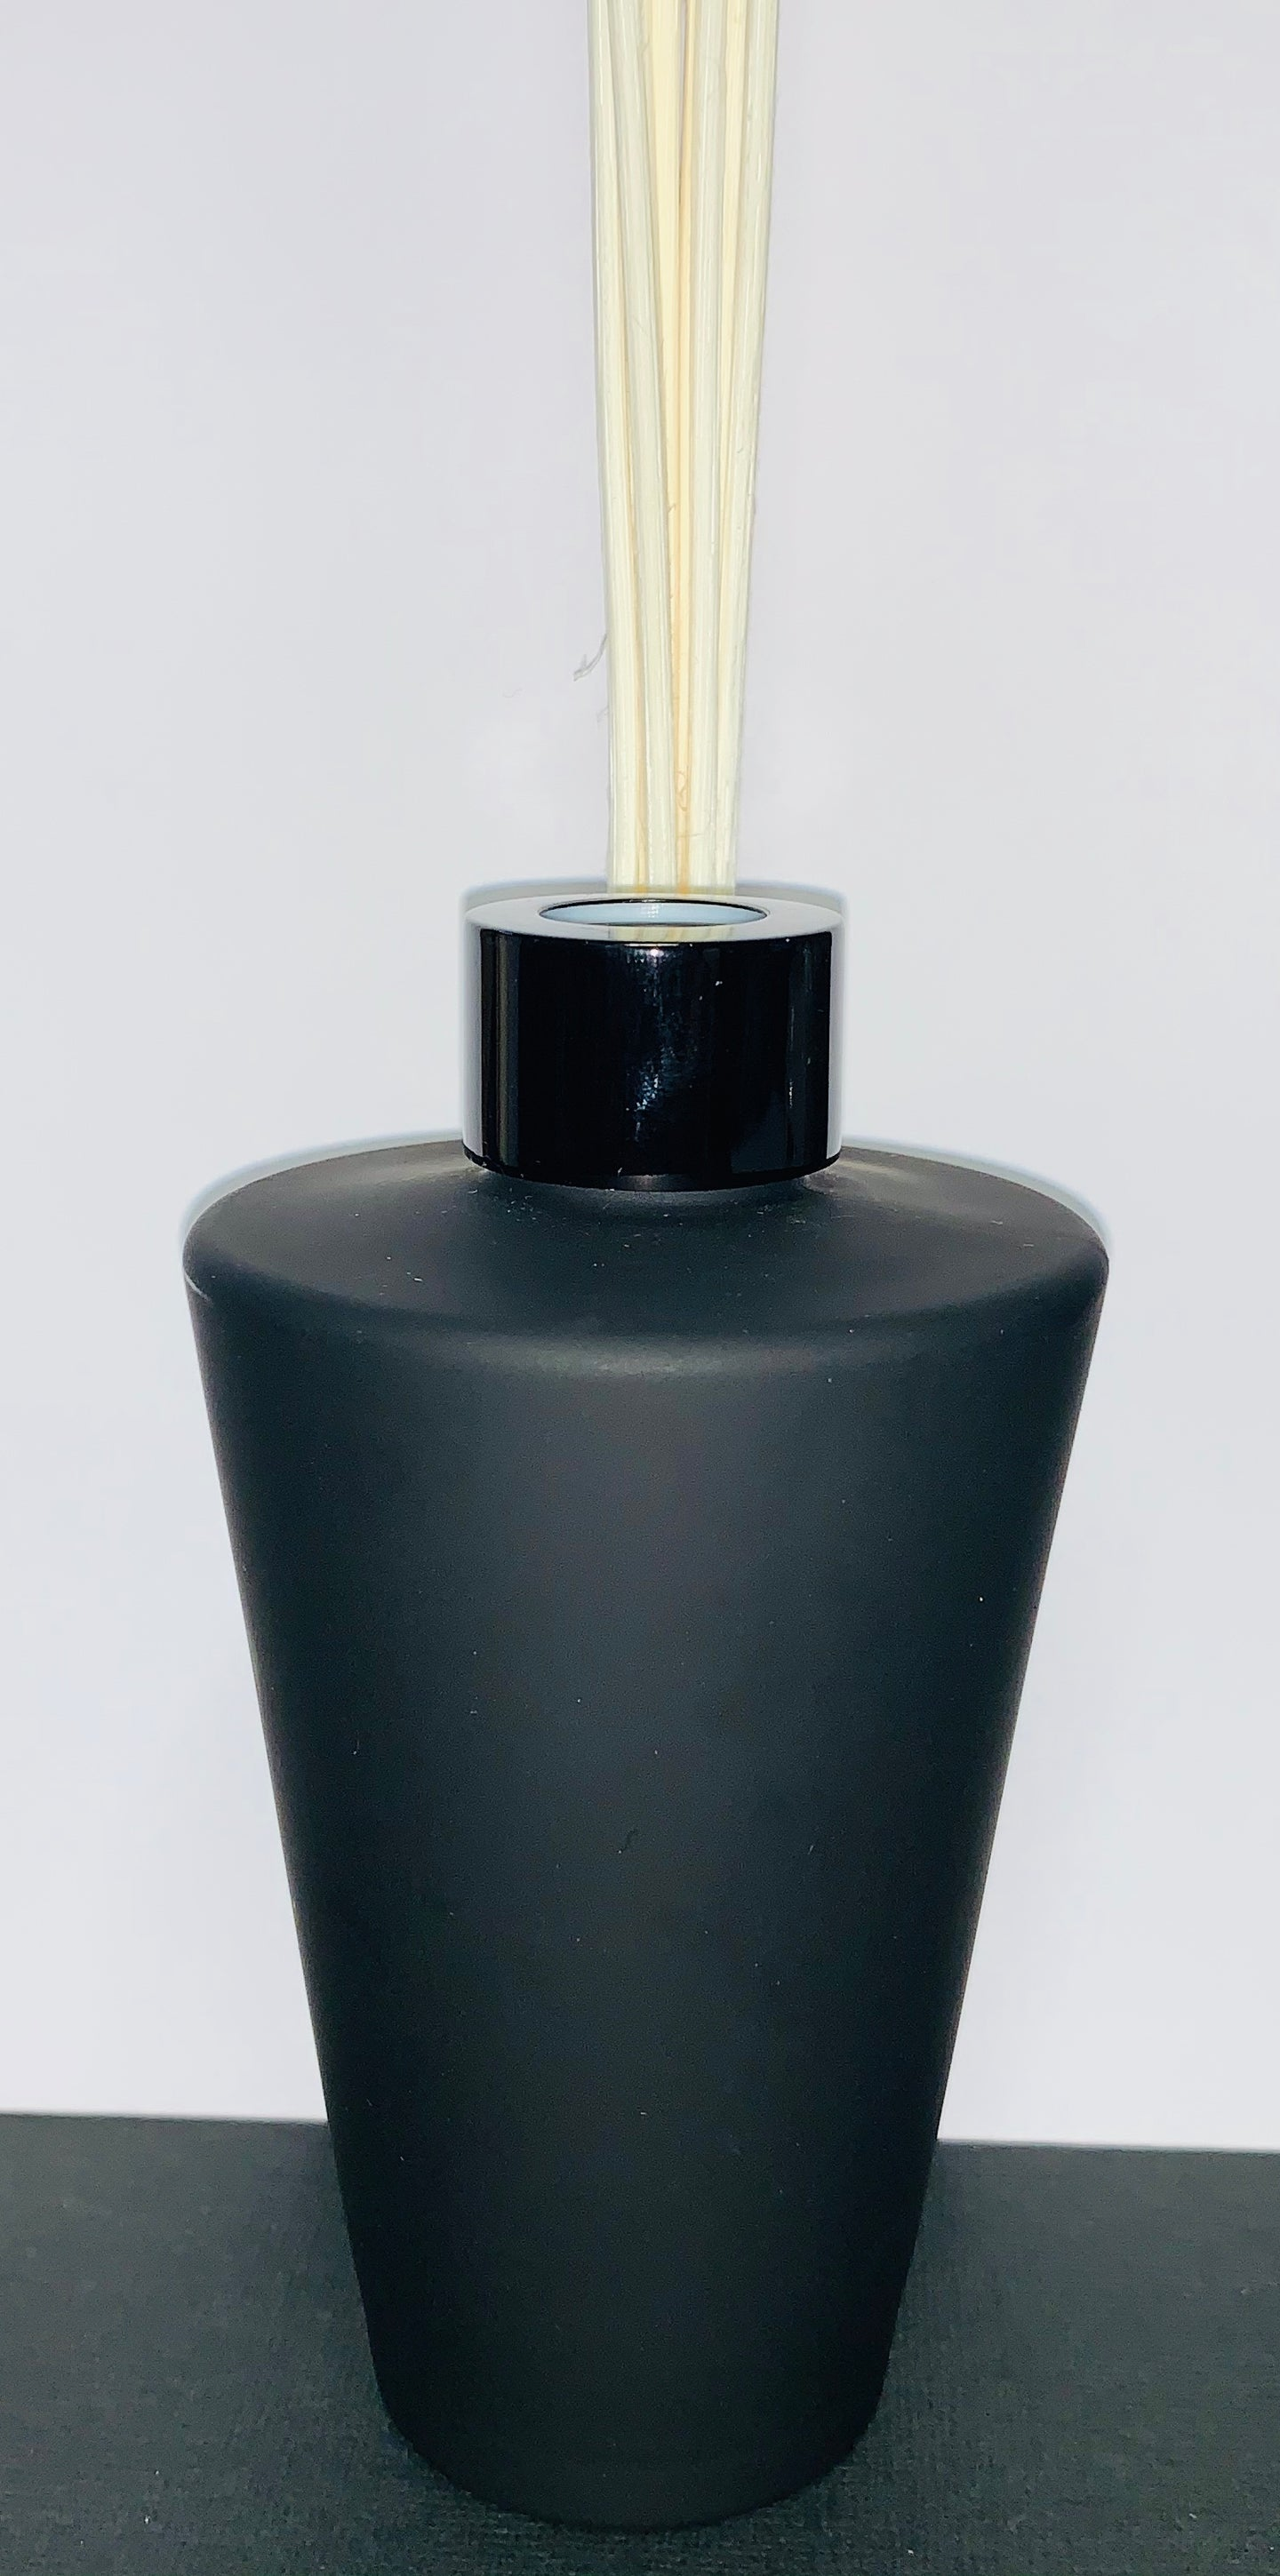 Natural Reed Diffuser - Matt Black Nova